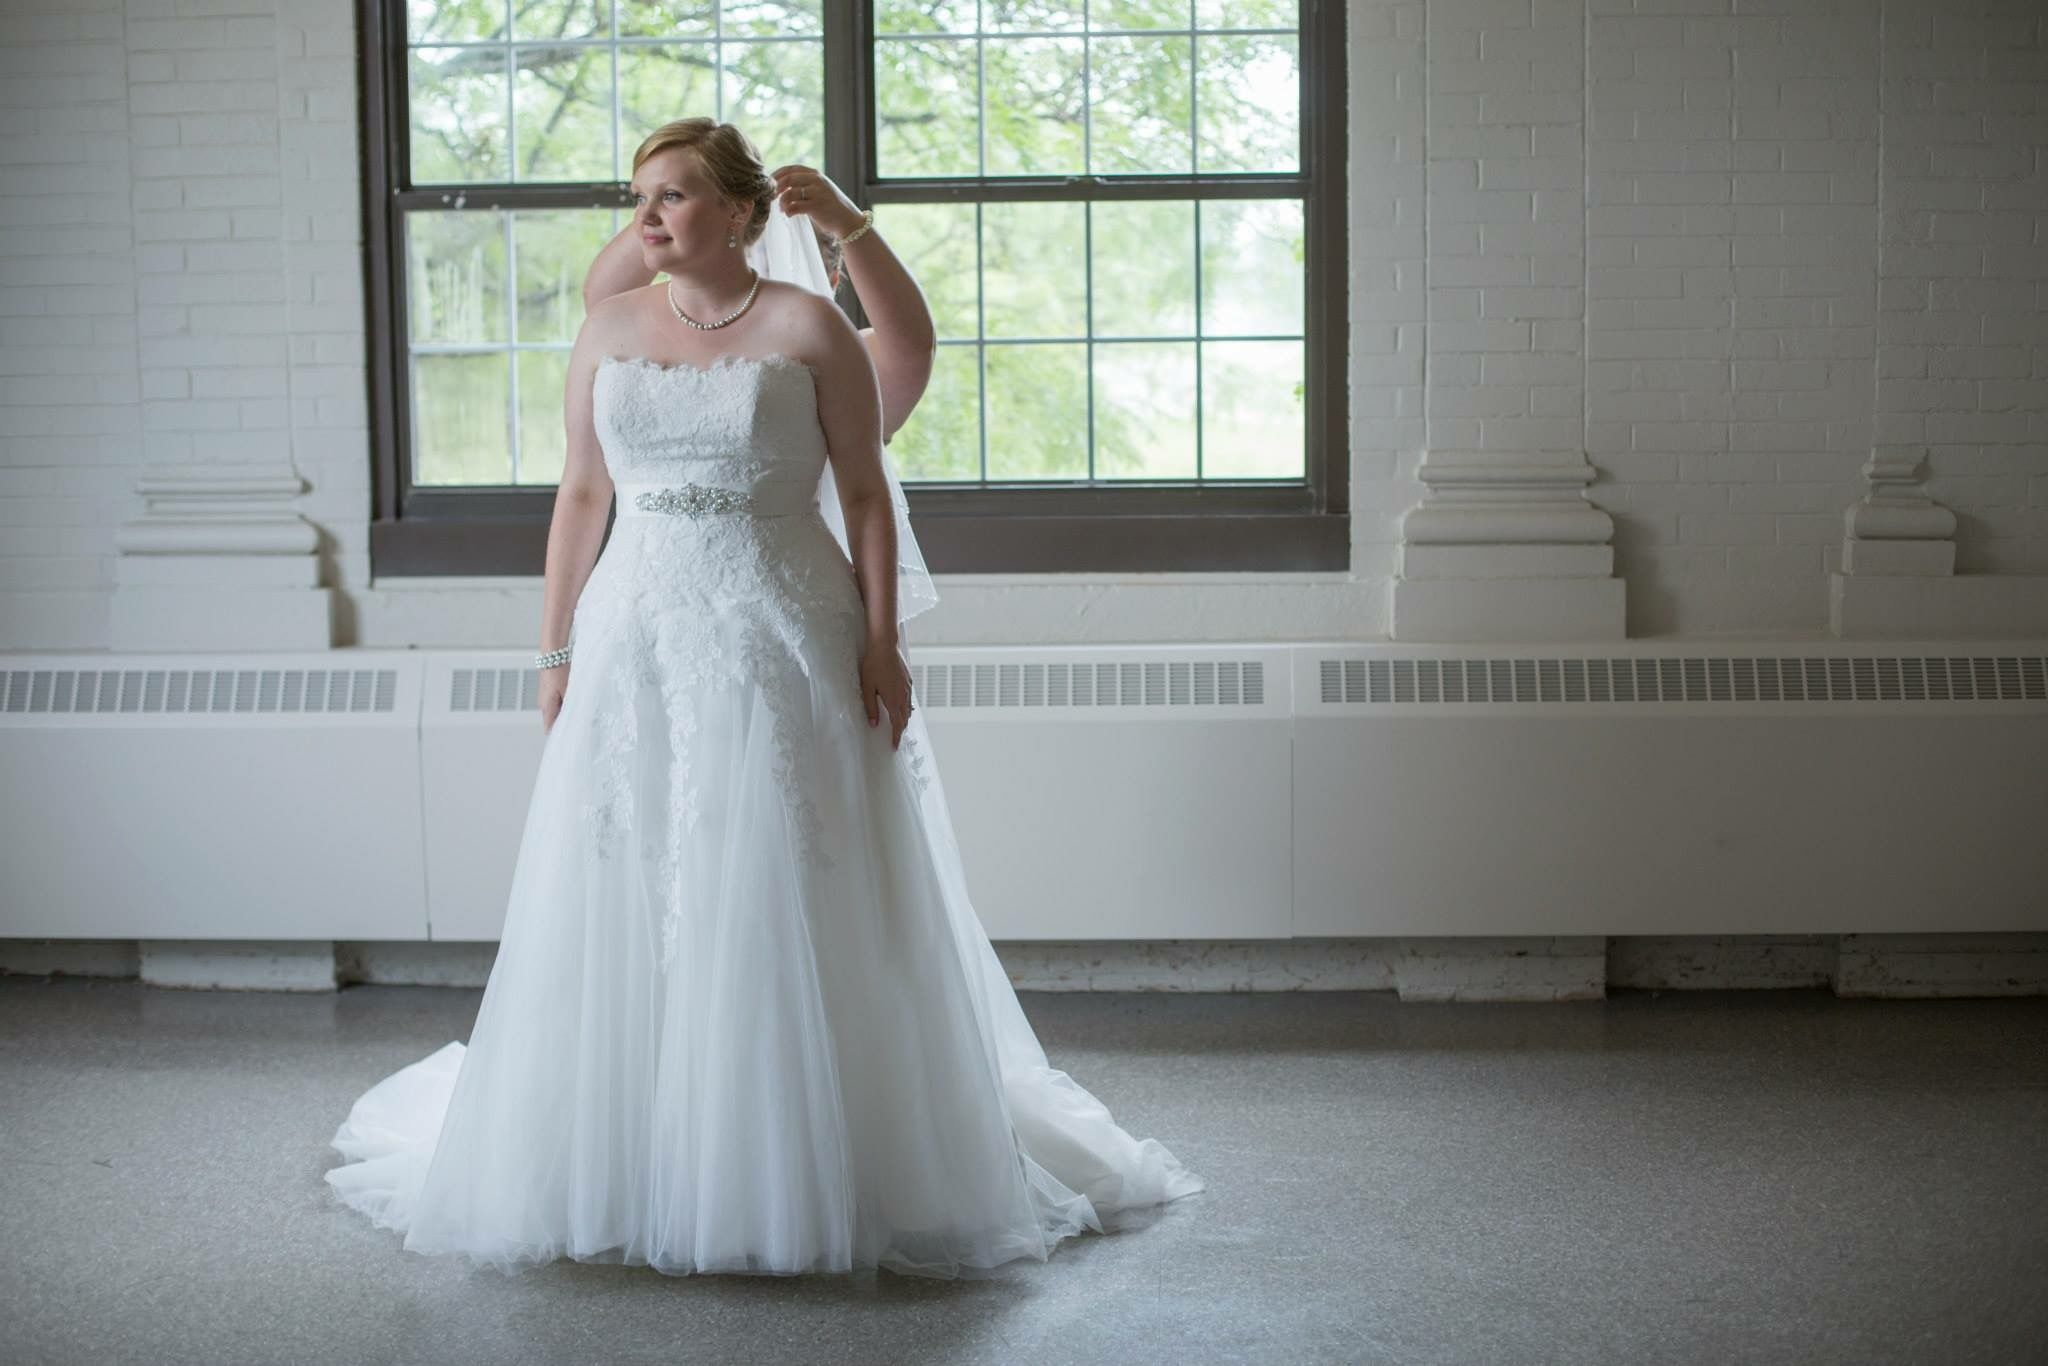 Maggie Sottero Nadia, $700 Size: 18 | Used Wedding Dresses | Maggie ...